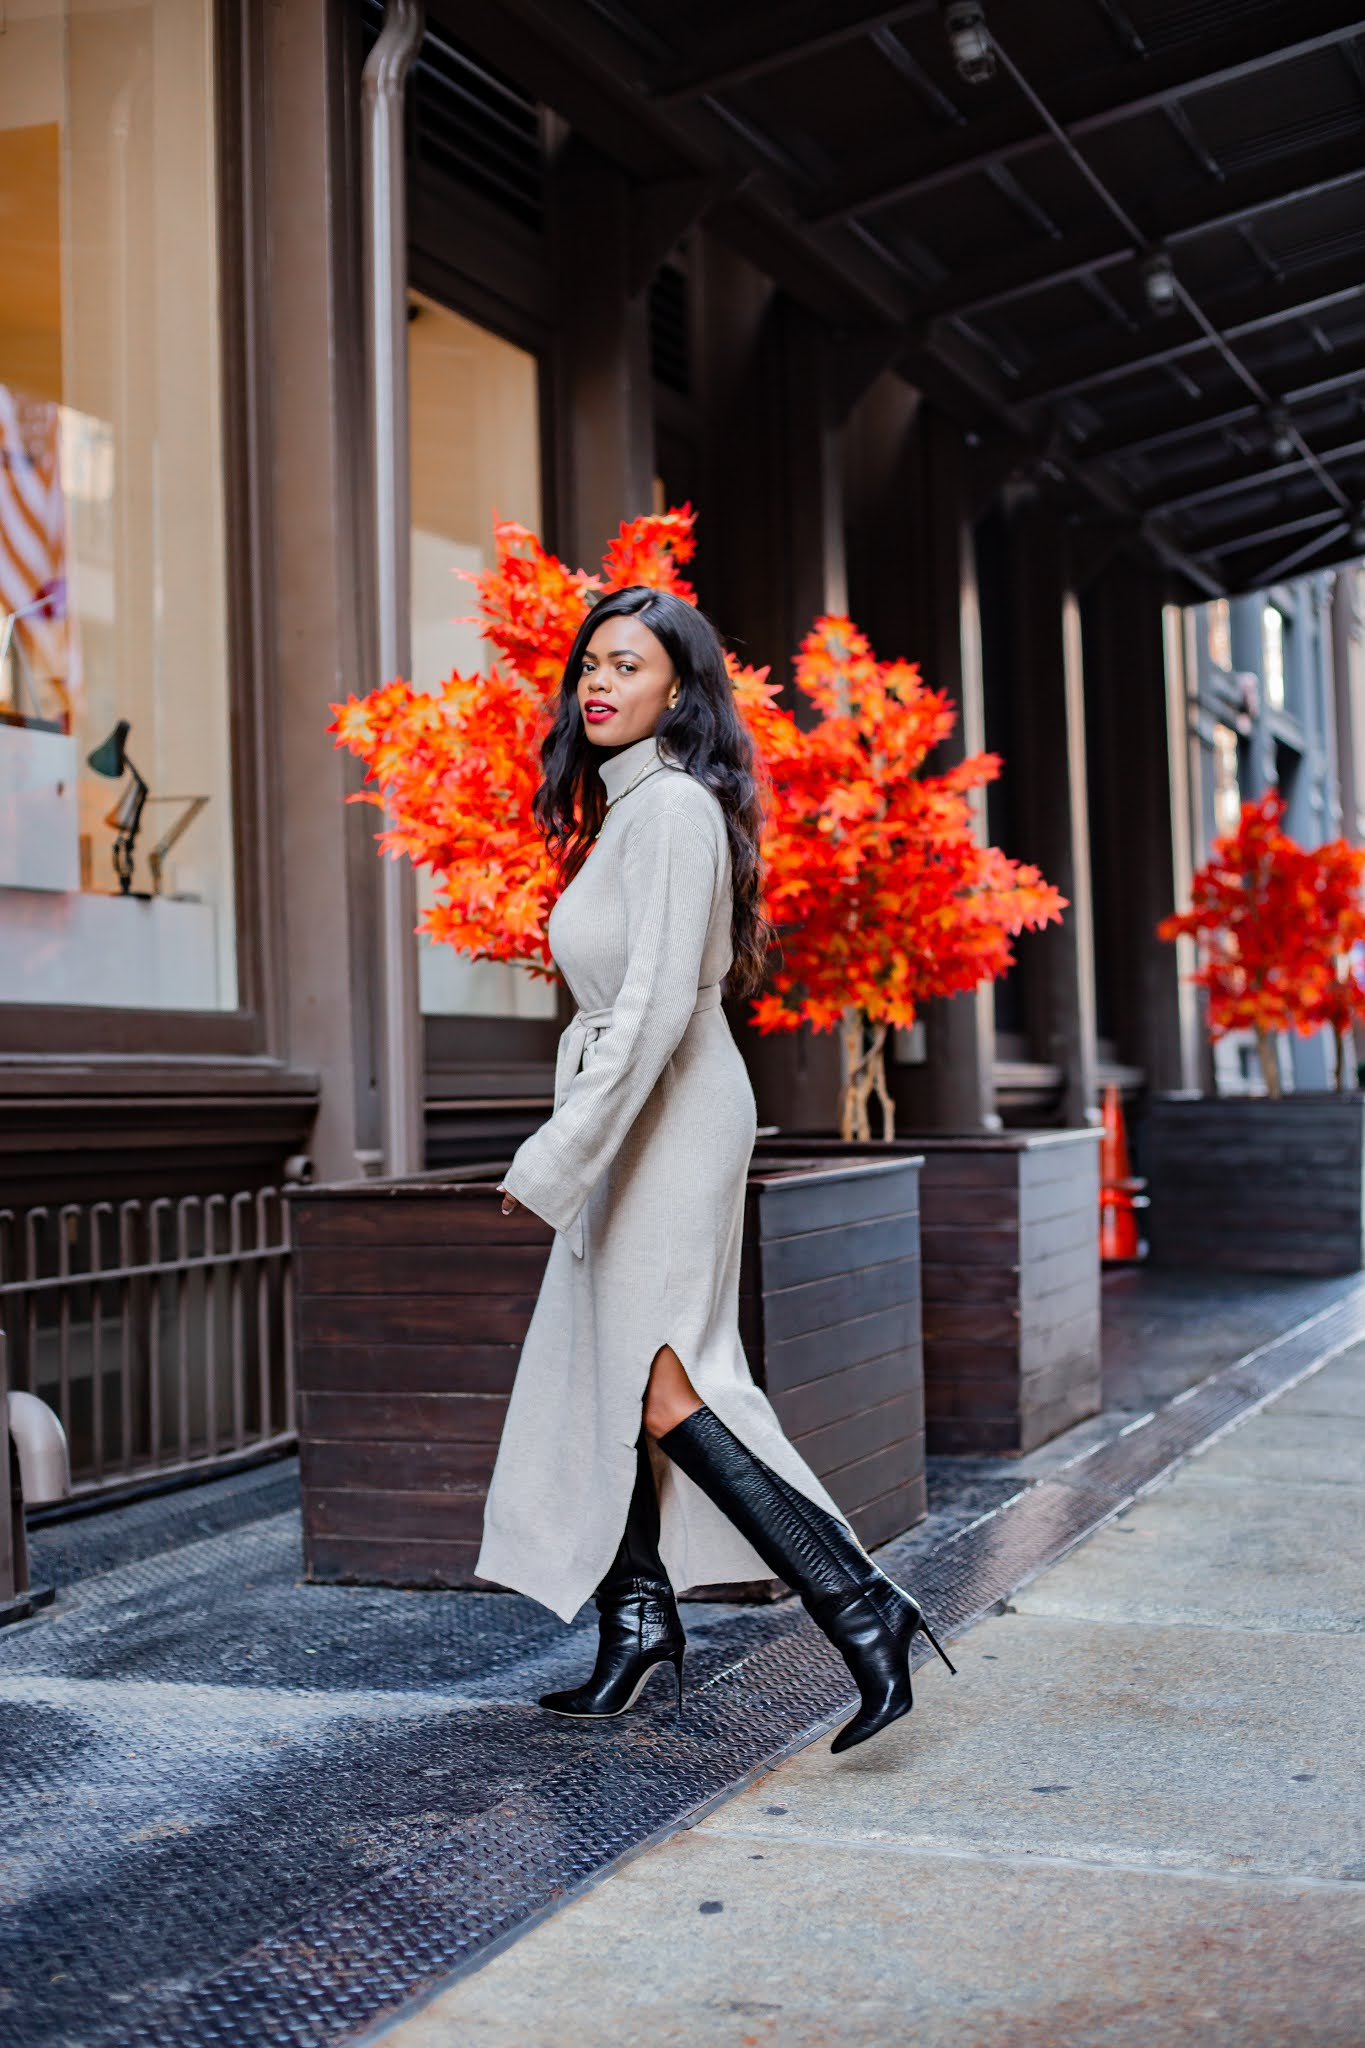 10 WINTER WARDROBE INVESTMENTS You Need From FARFETCH